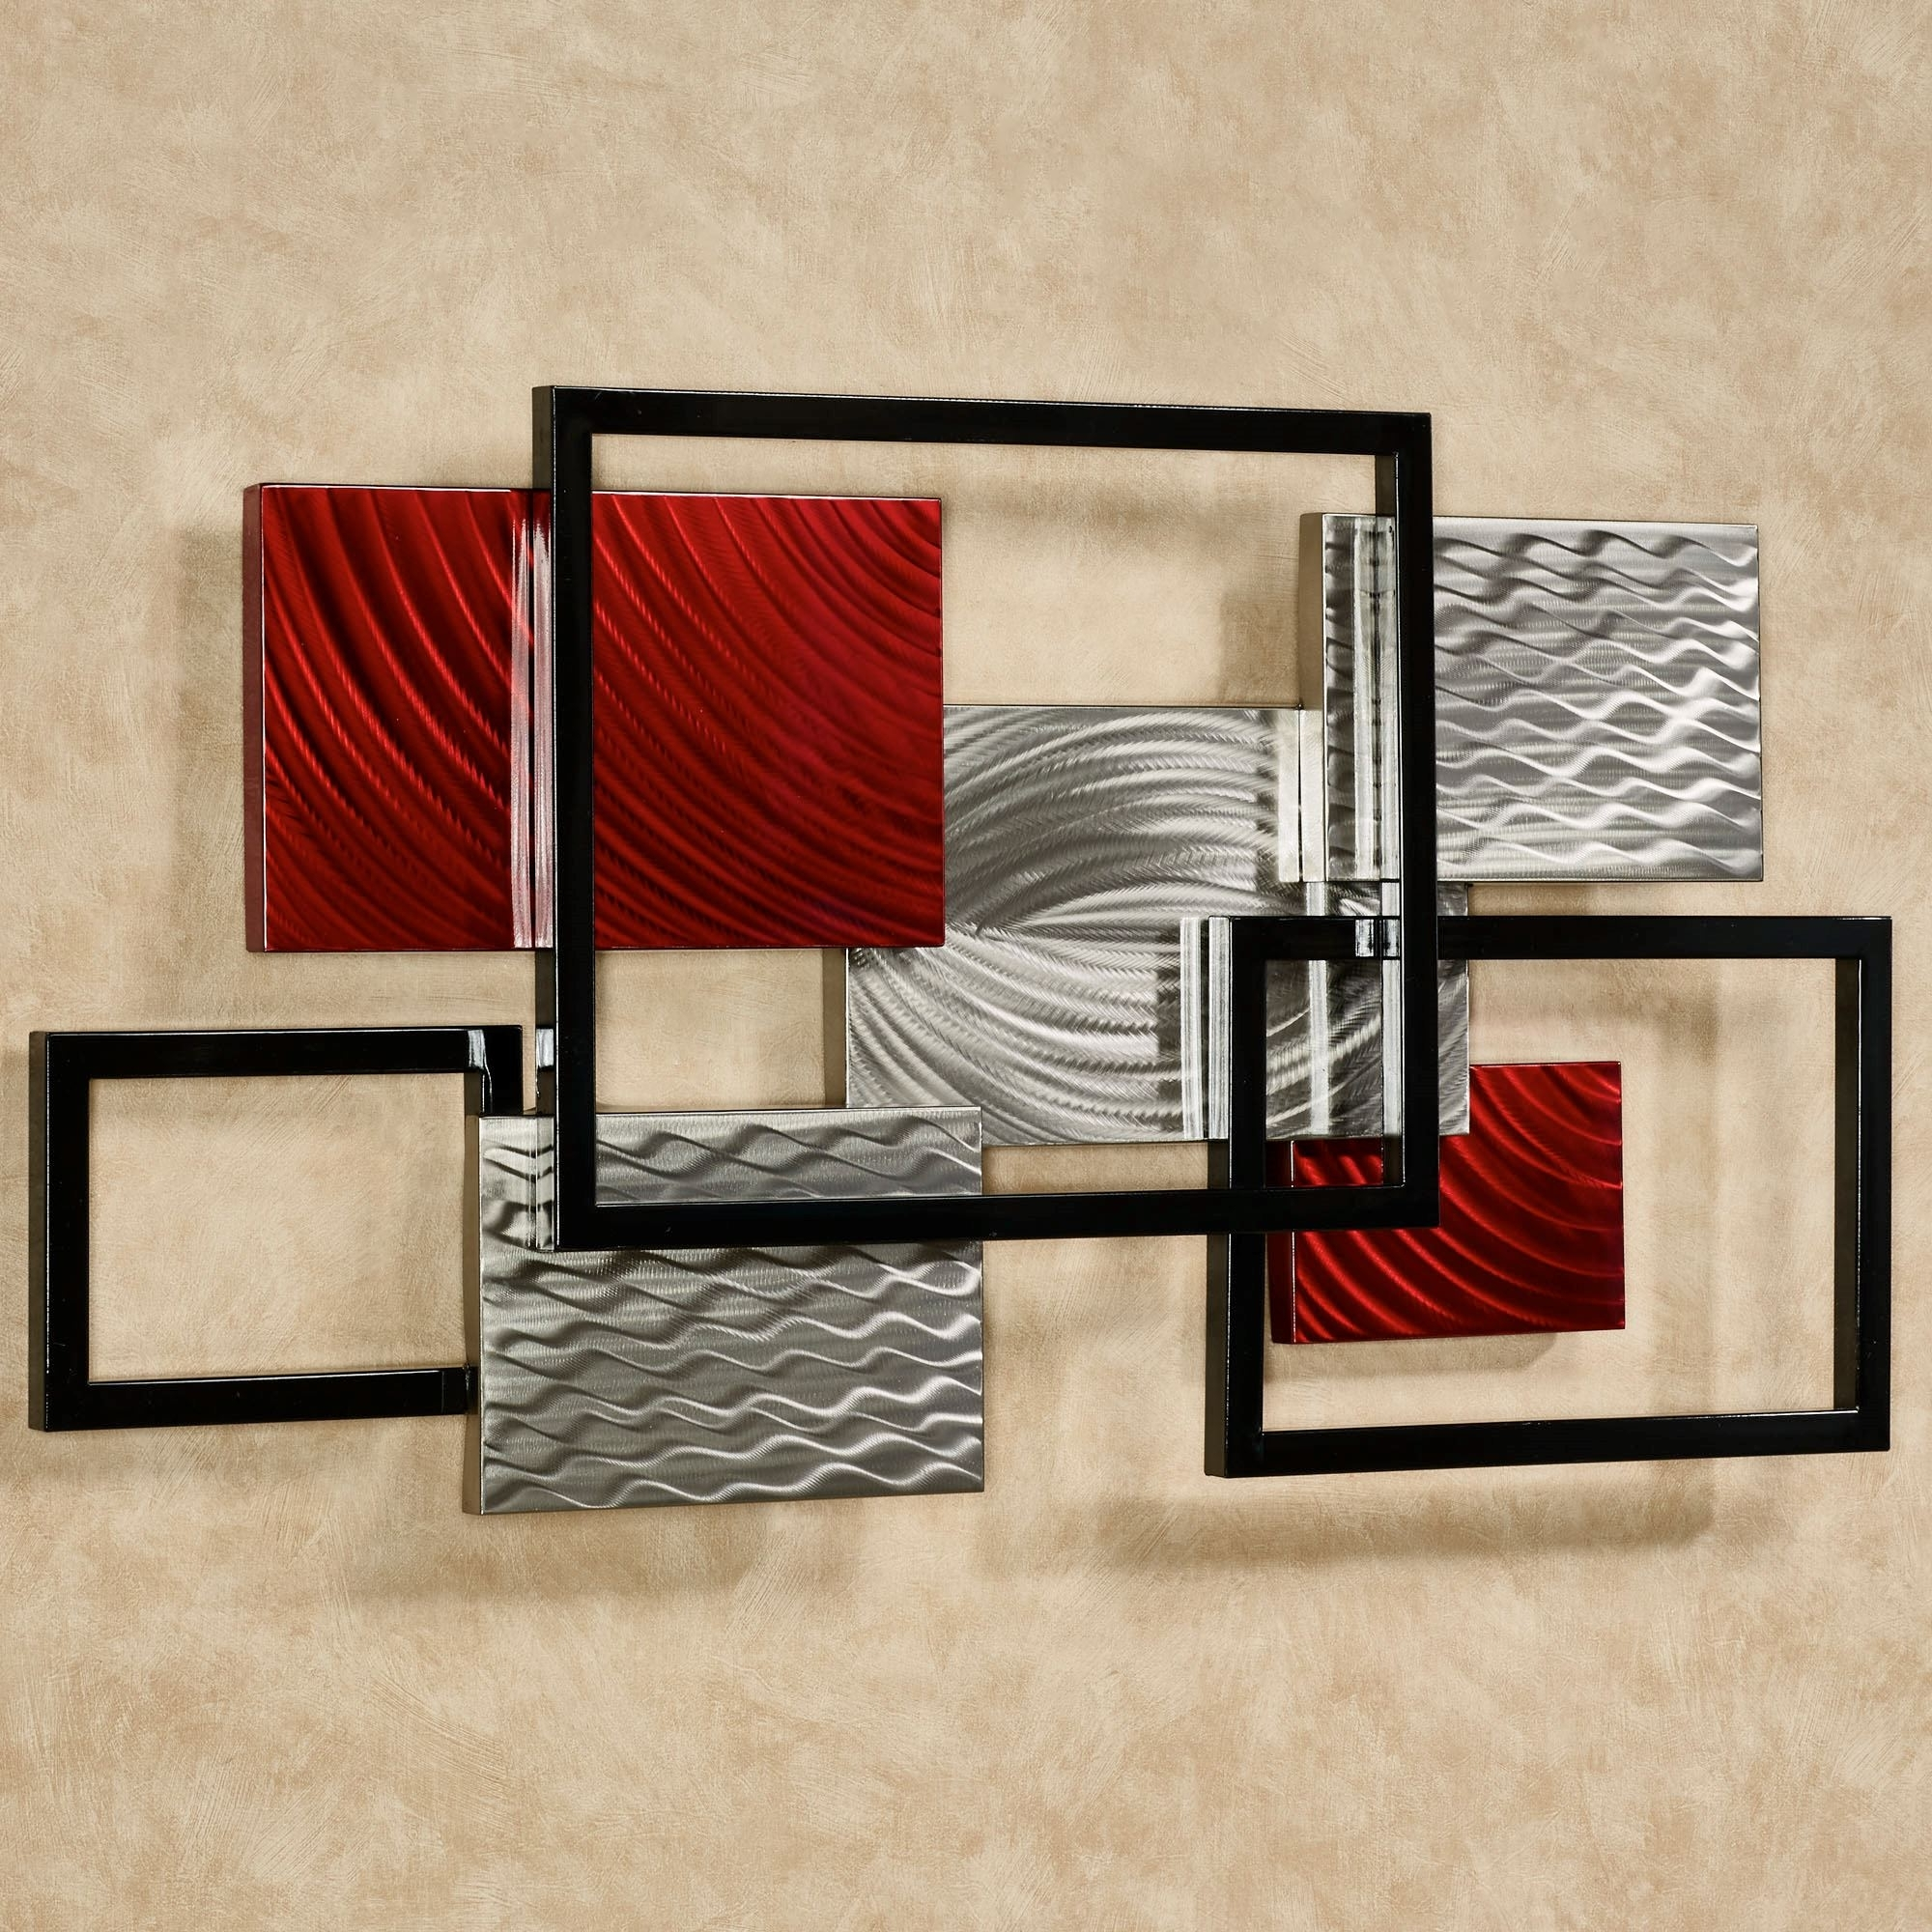 Latest Framed Array Indoor Outdoor Abstract Metal Wall Sculpture For Abstract Metal Wall Art Sculptures (View 5 of 15)